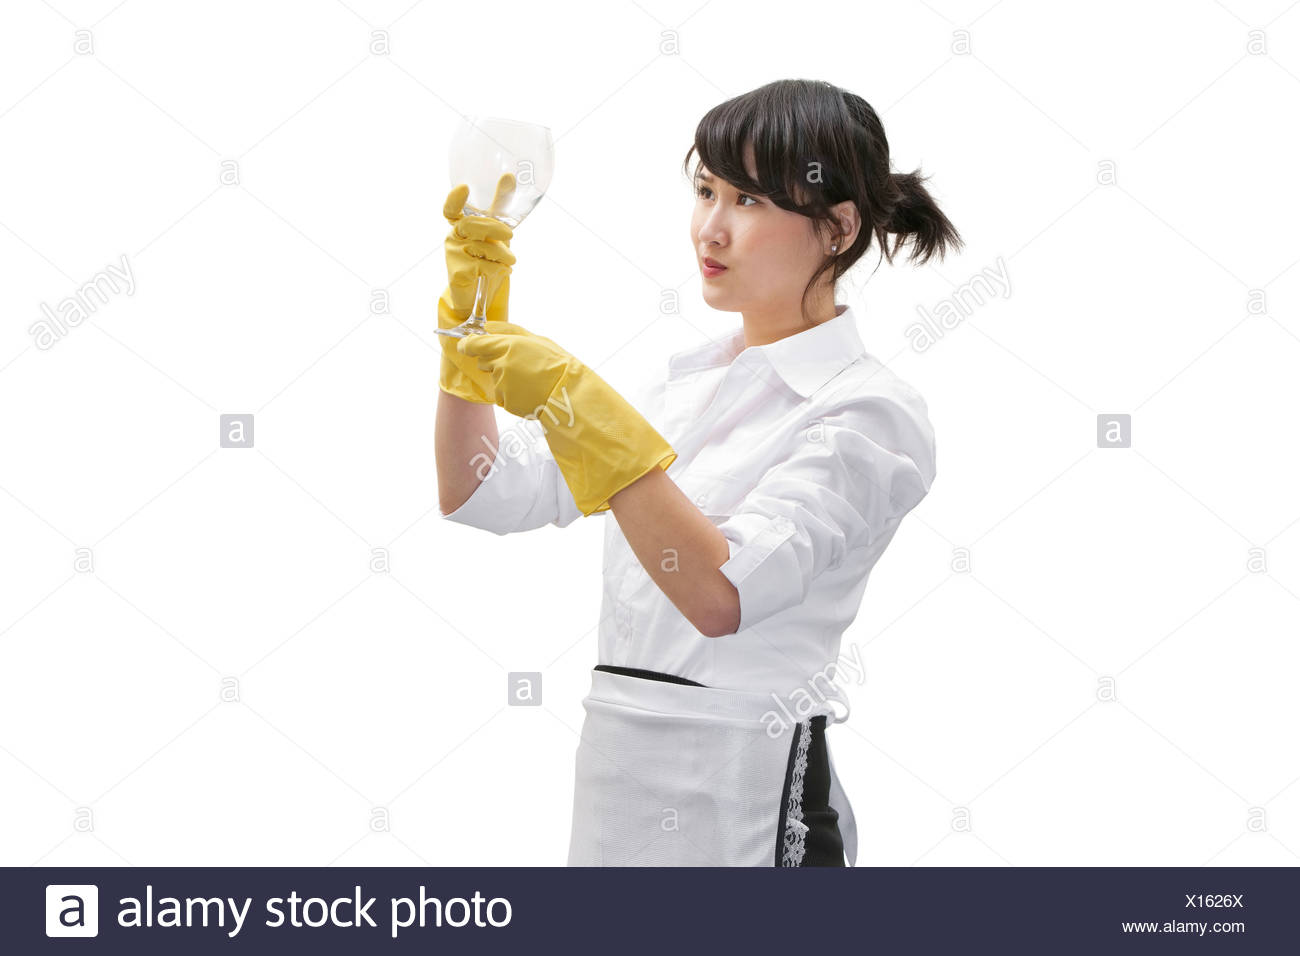 looking for a house cleaner